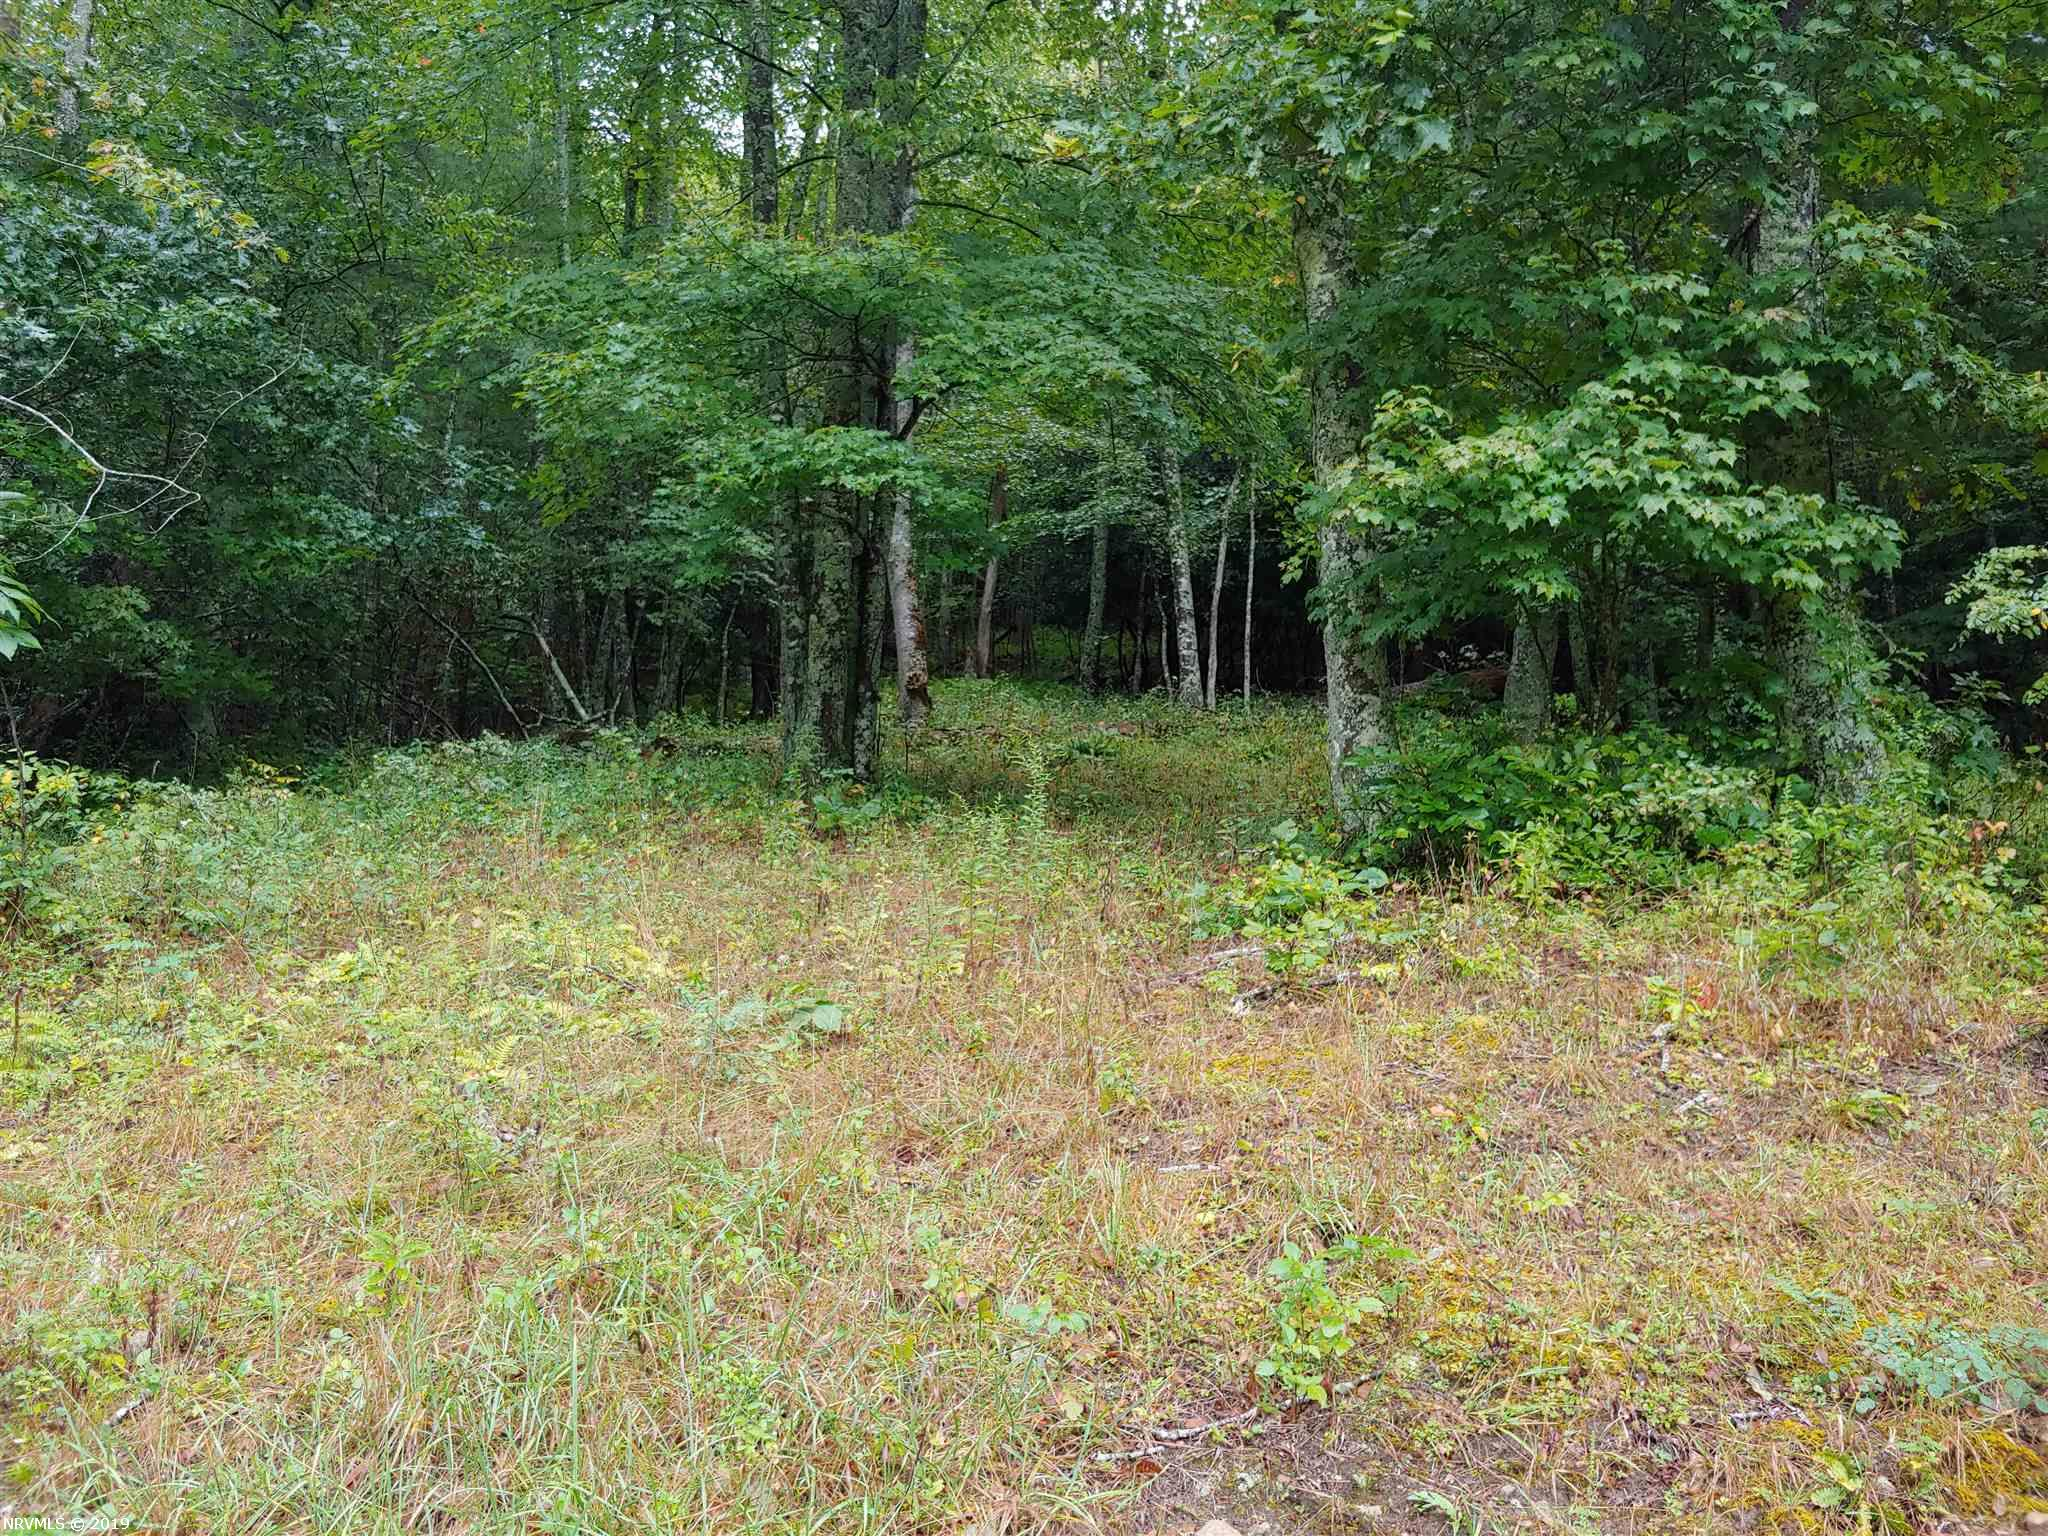 Nice building site in a very secluded area. Features long range views and a spring! Ideal for recreational uses such as hunting, hiking and ATV riding. Home to a variety of wildlife.